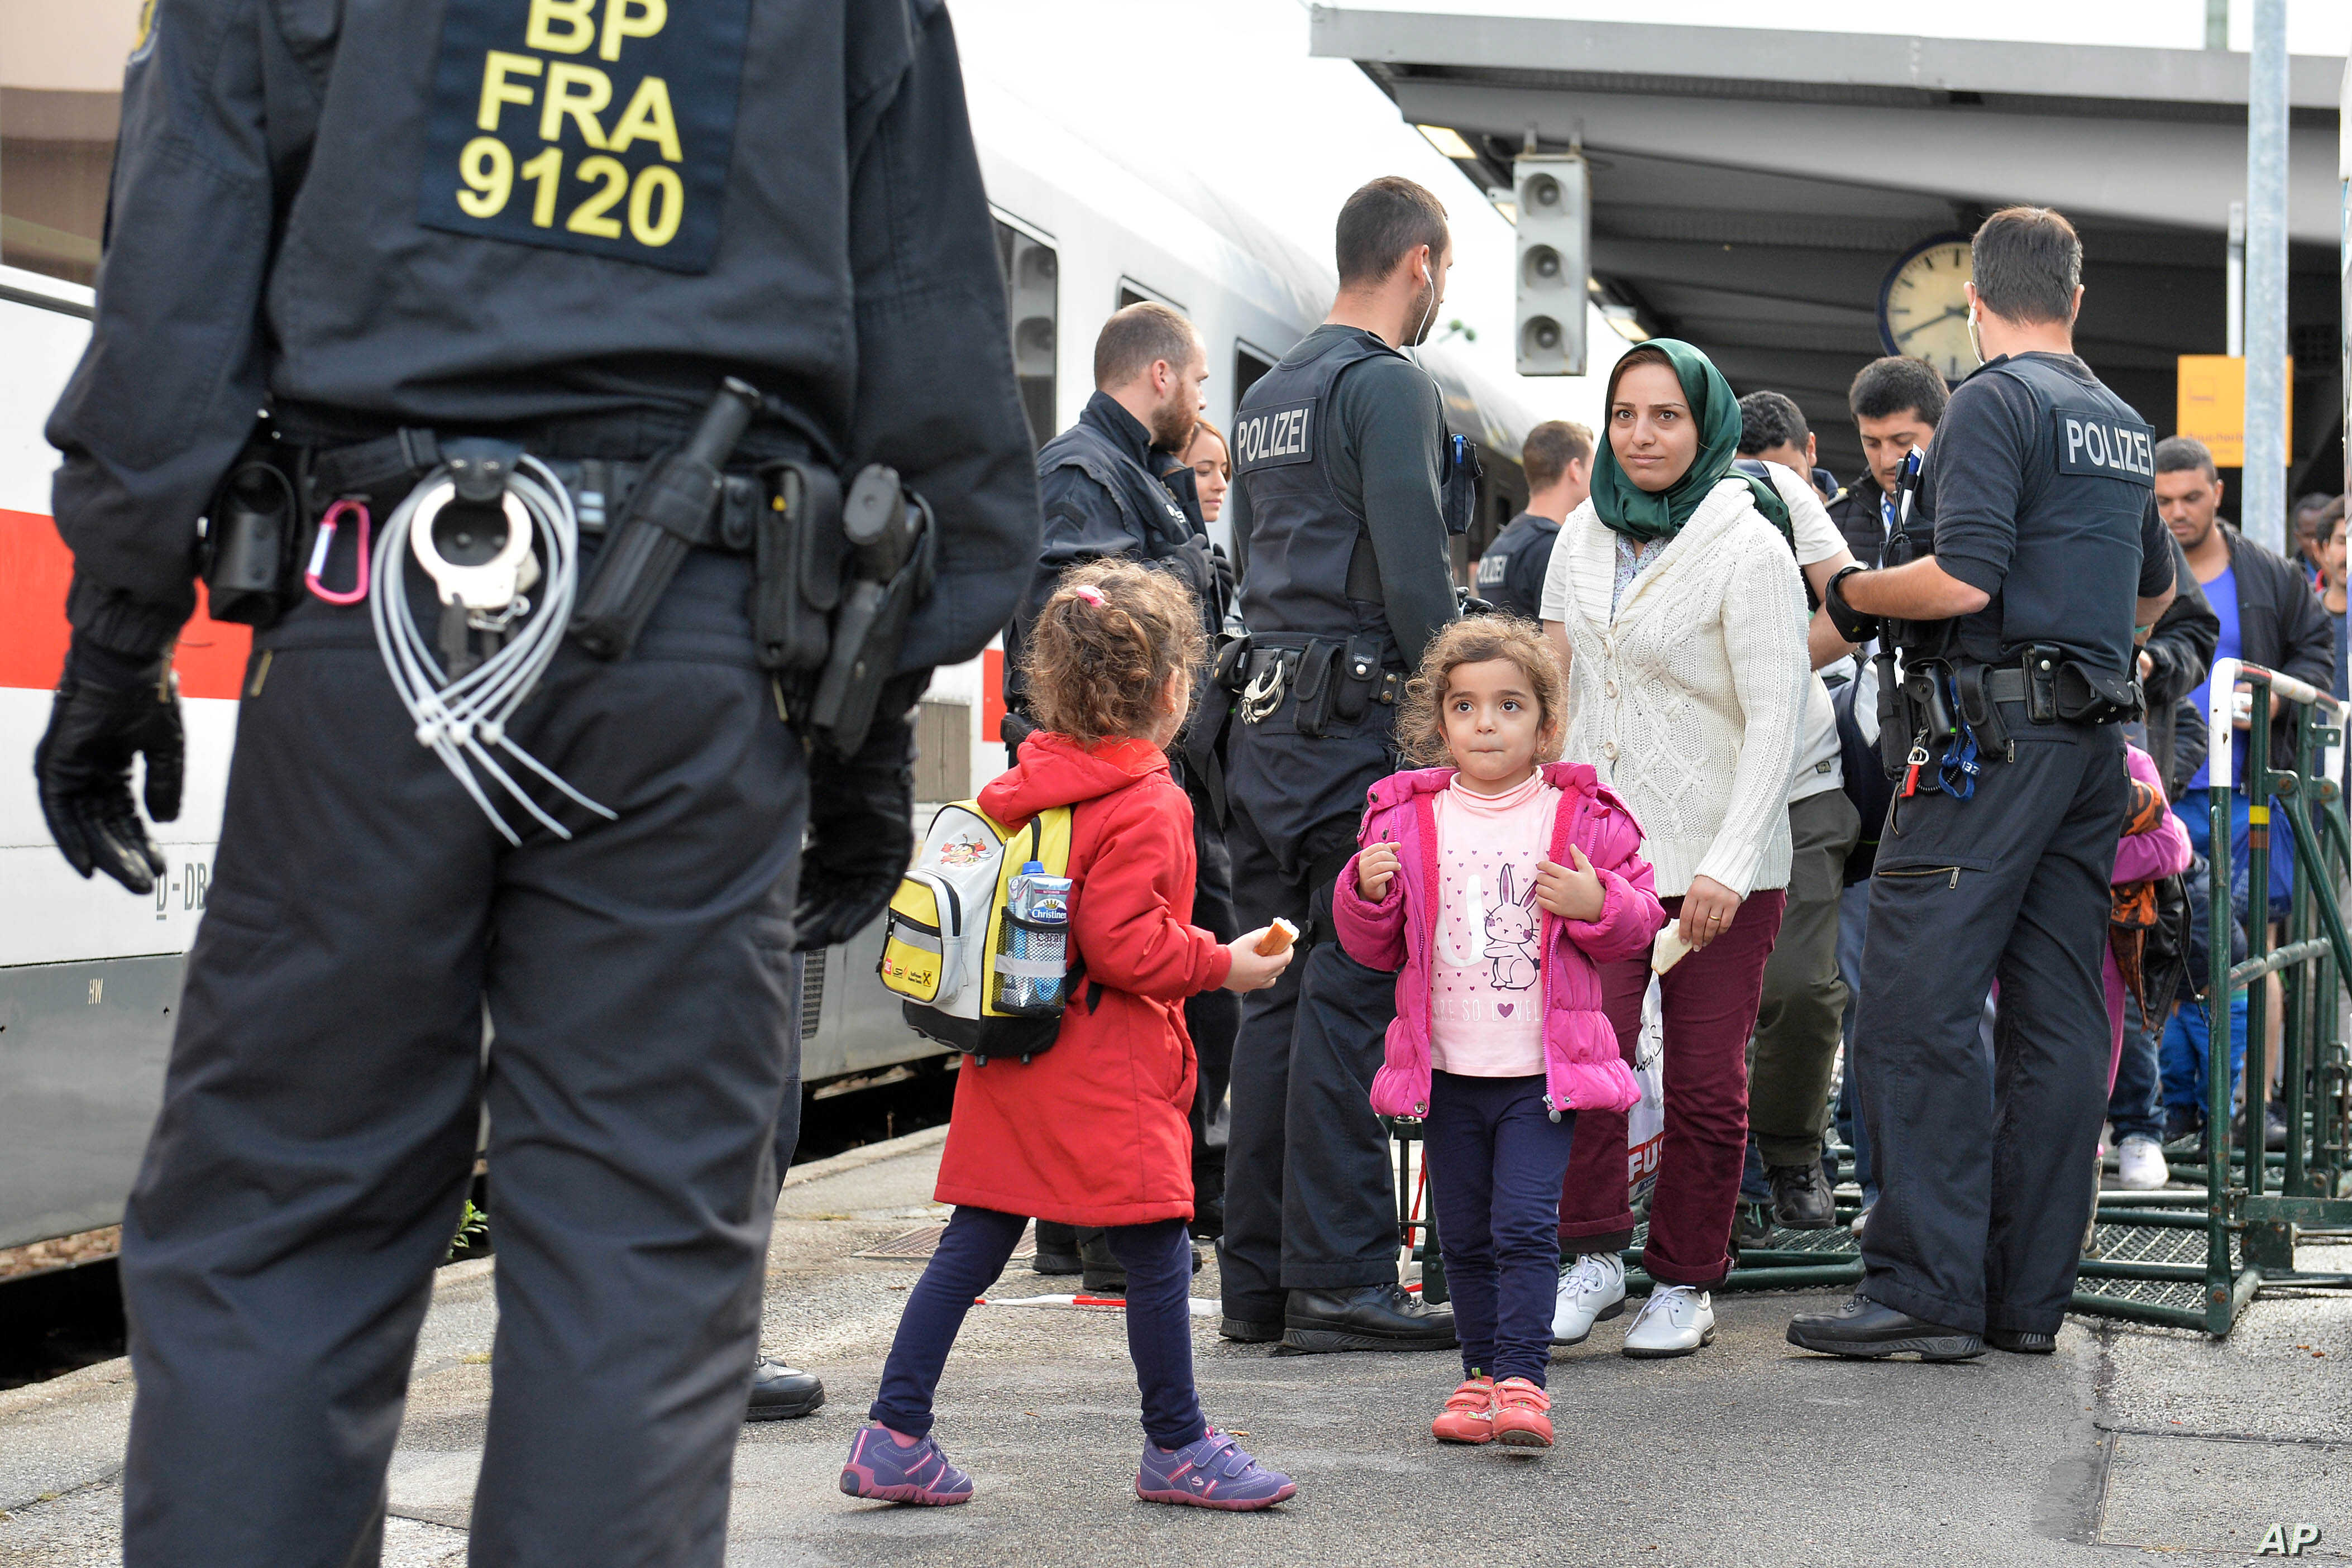 Refugees wait for a train at the rail station in Freilassing, southern Germany, near the Austrian border, Sept. 18, 2015.